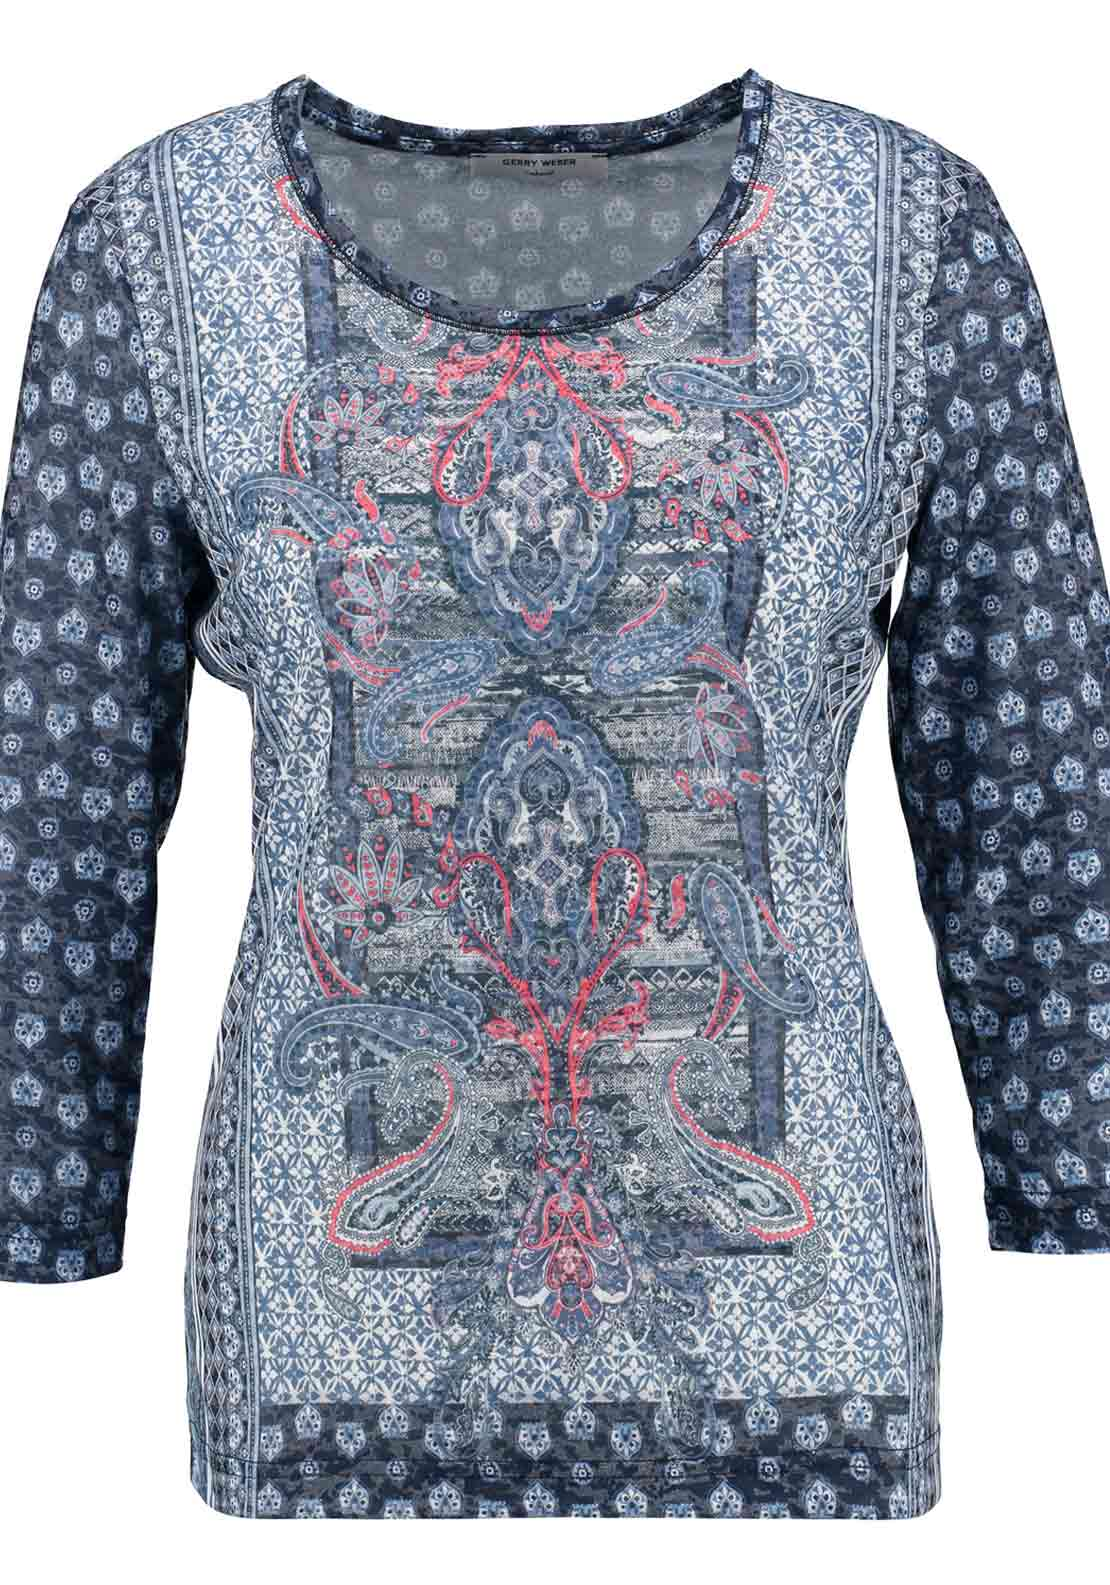 Gerry Weber Paisley Print Cropped Sleeve T-Shirt, Navy Multi